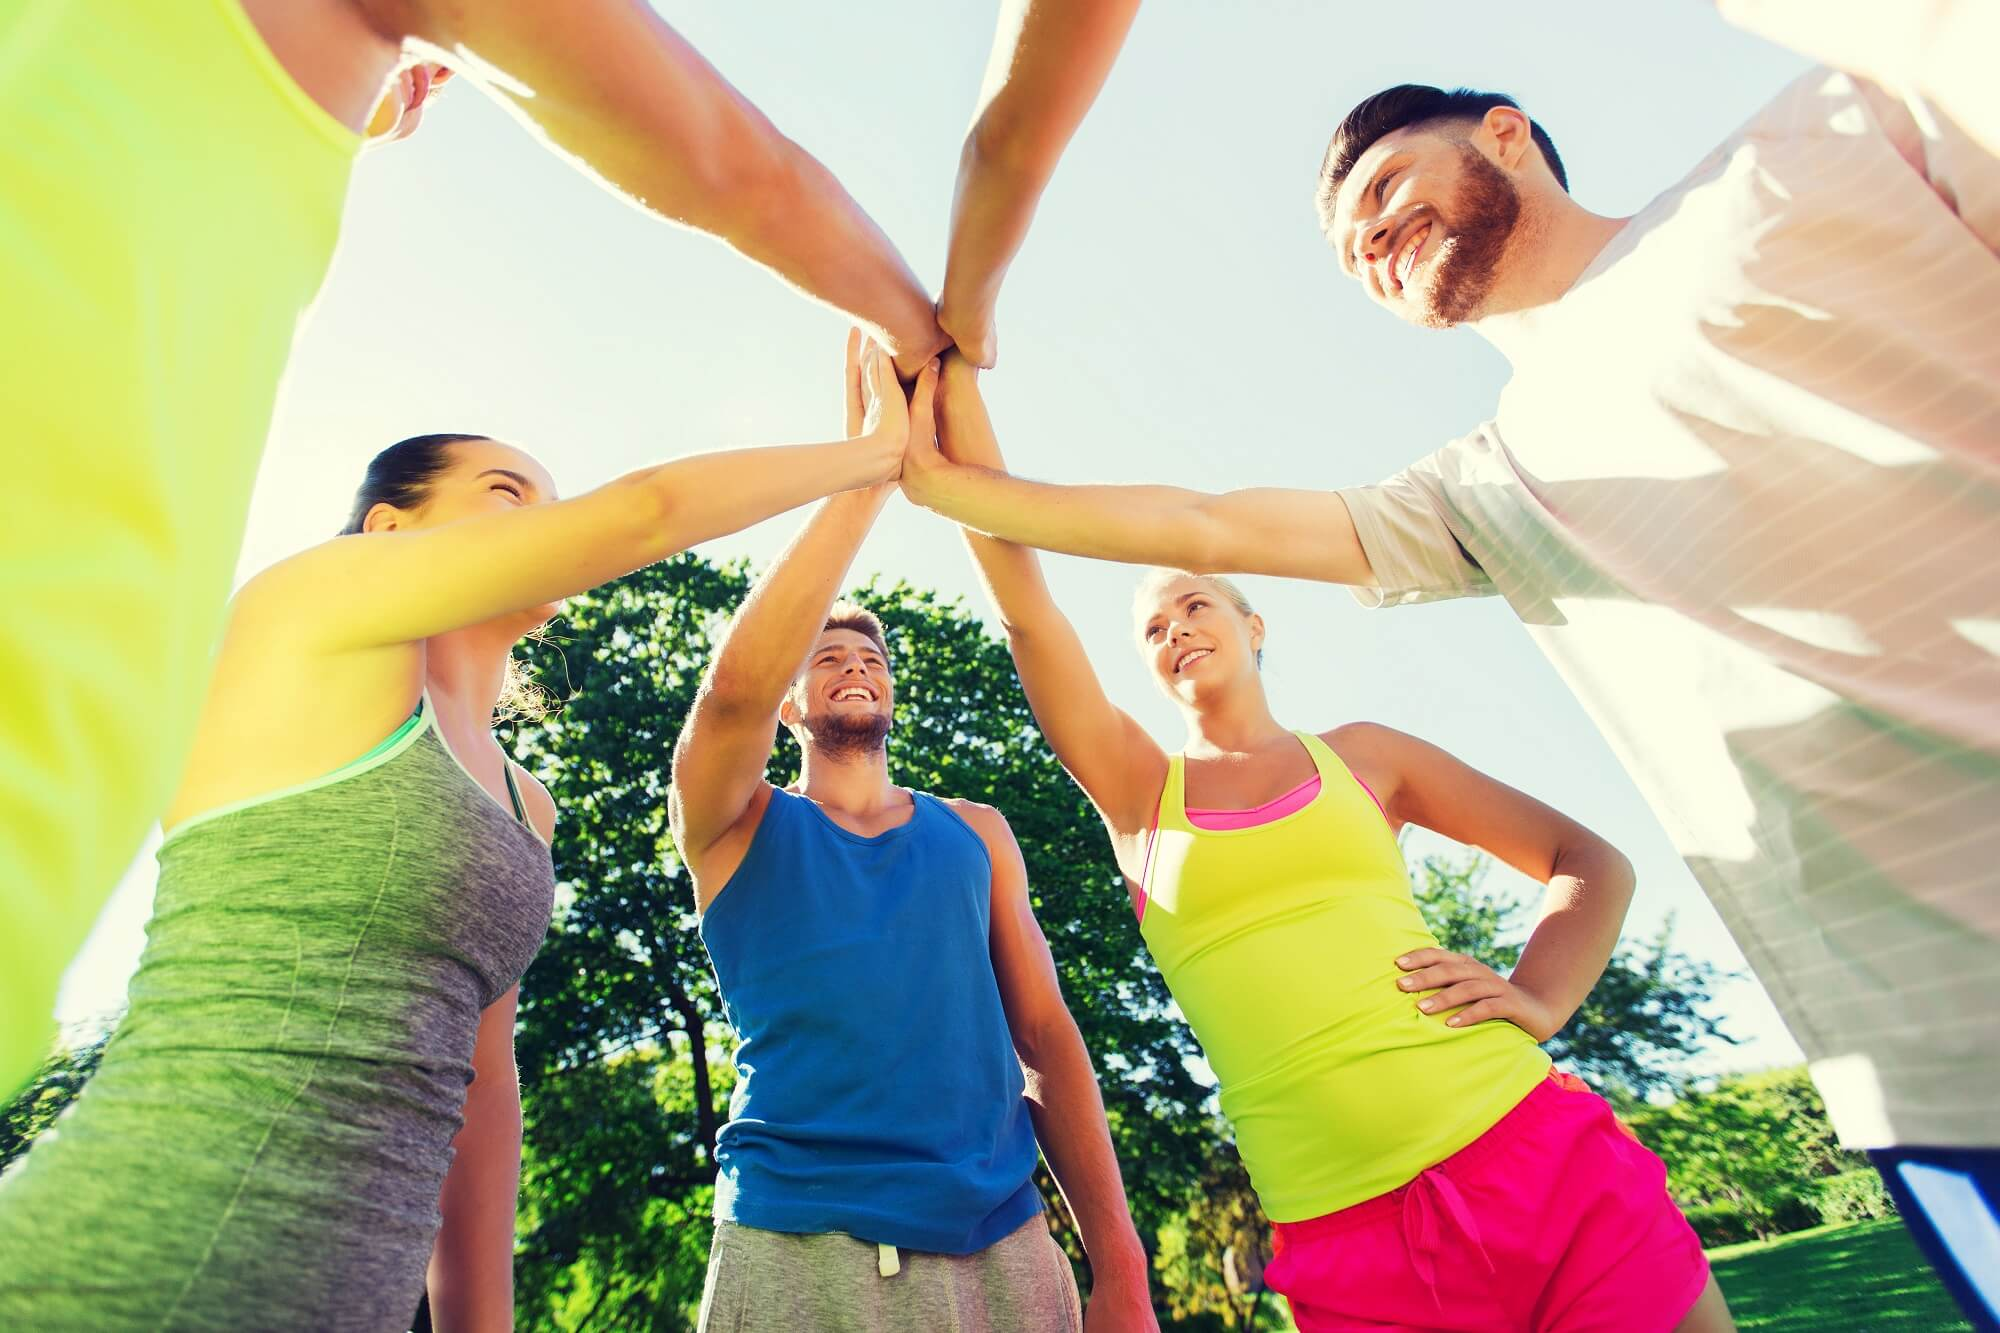 fitness, sport, friendship and healthy lifestyle concept - group